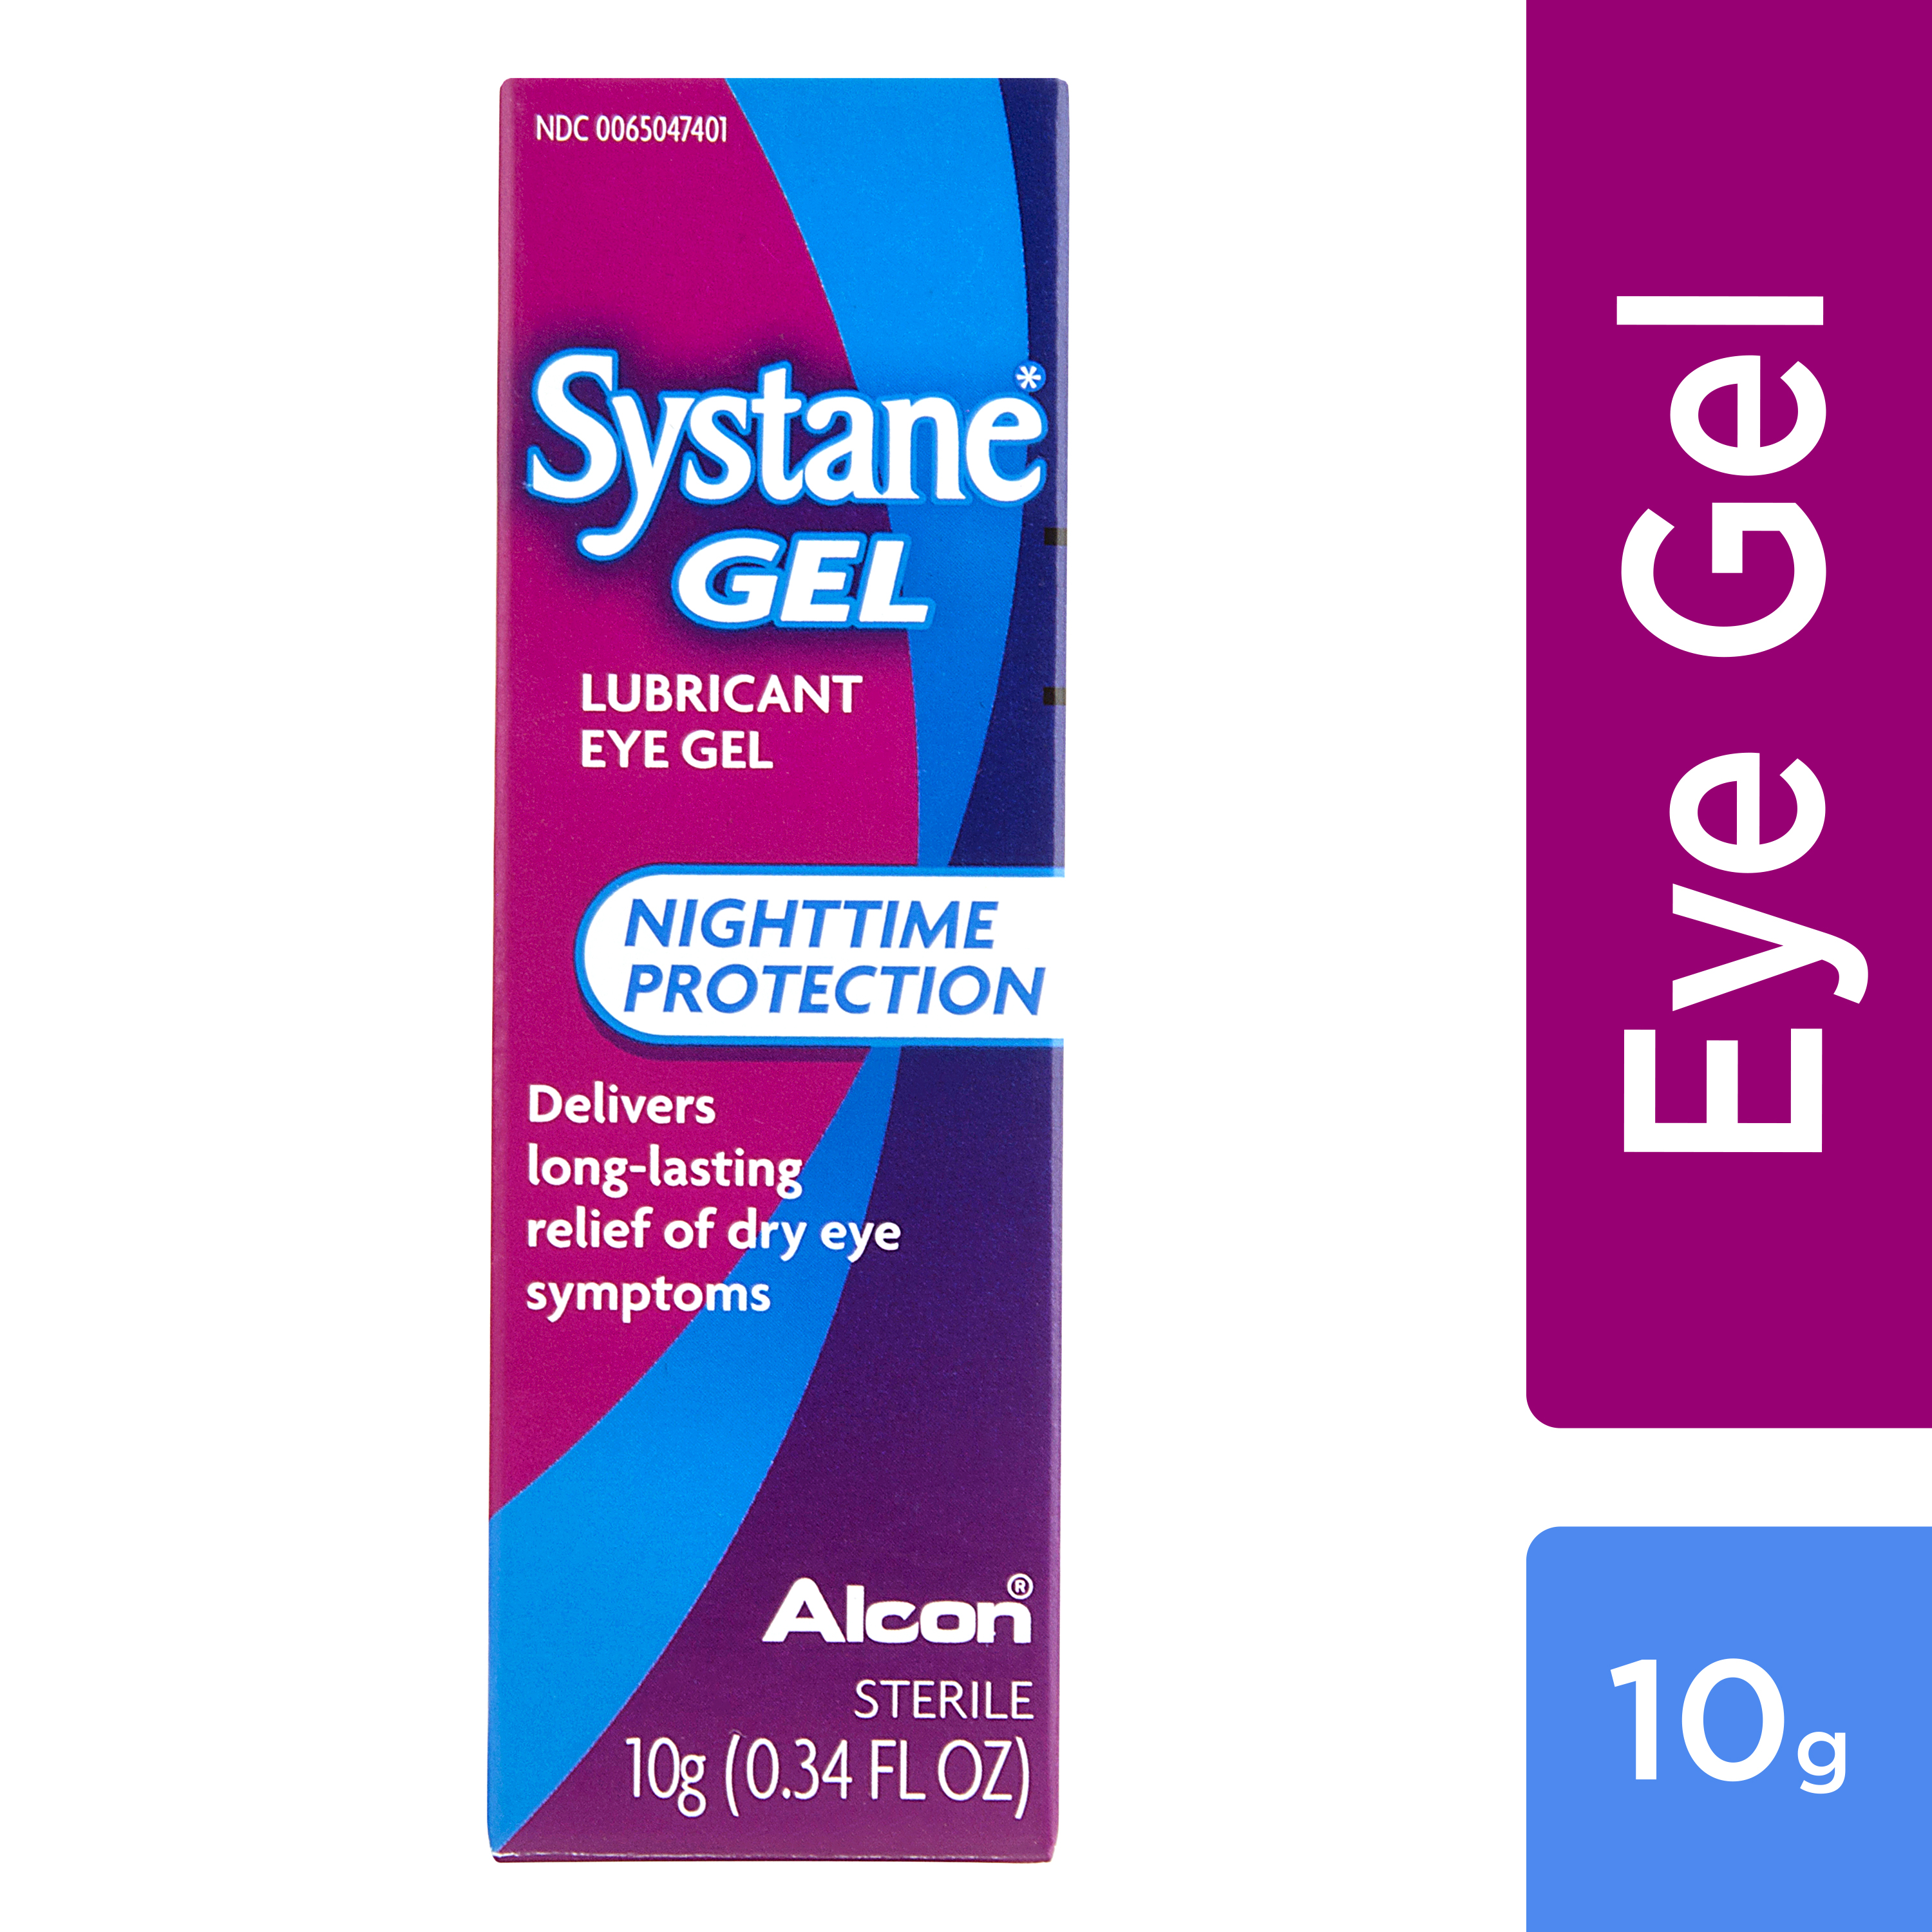 Systane Gel Lubricant Eye Gel Nighttime Protection, 0.34 FL OZ